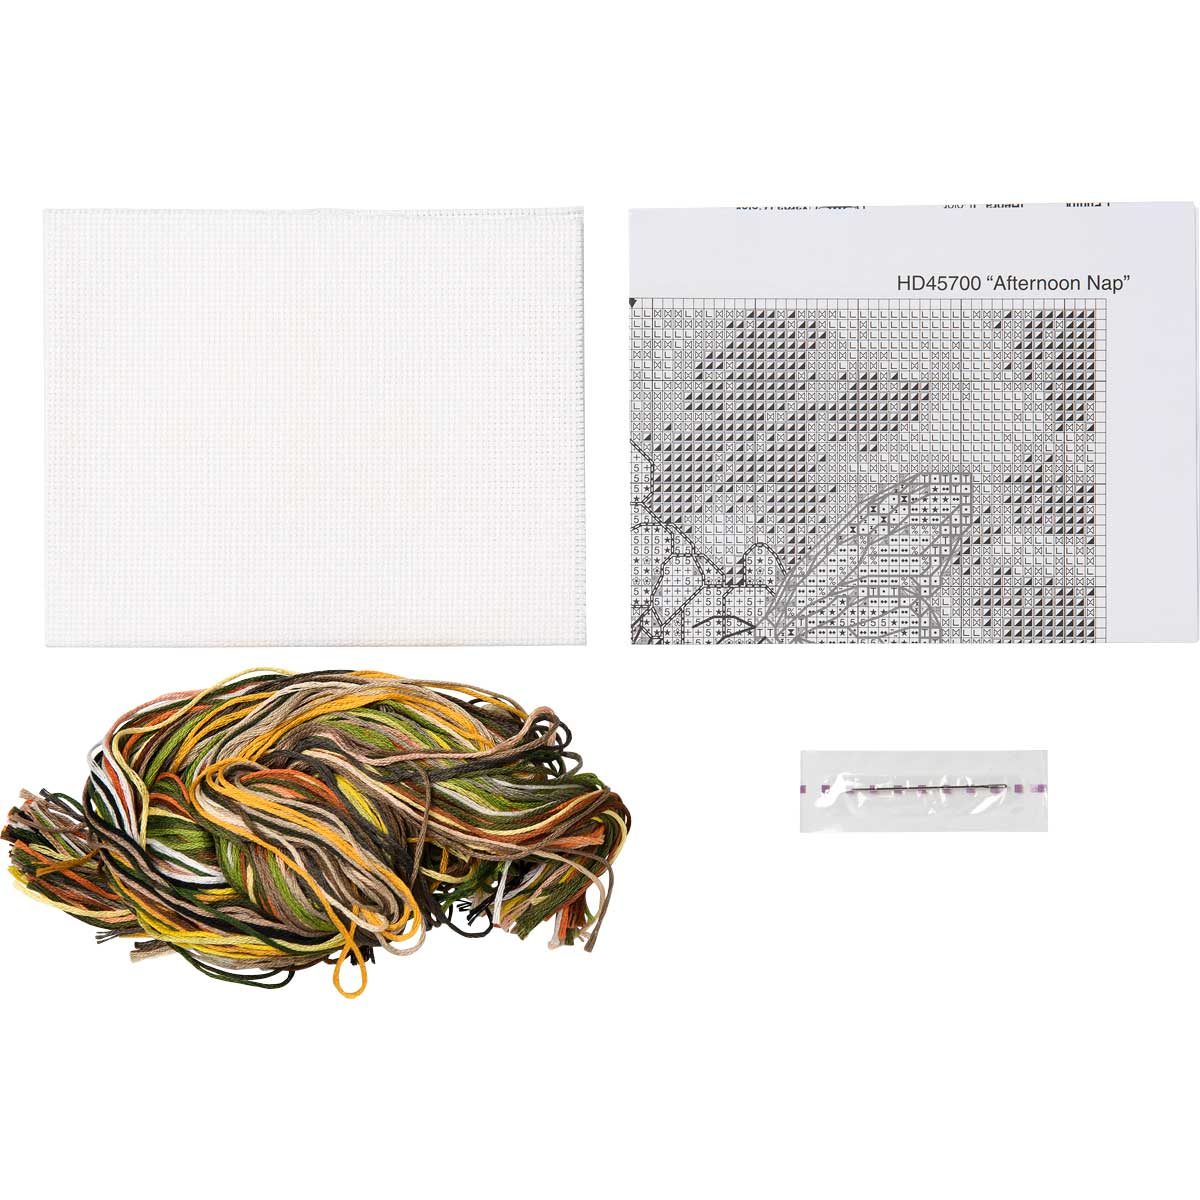 Bucilla ® Counted Cross Stitch - Picture Kits - Mini - Afternoon Nap